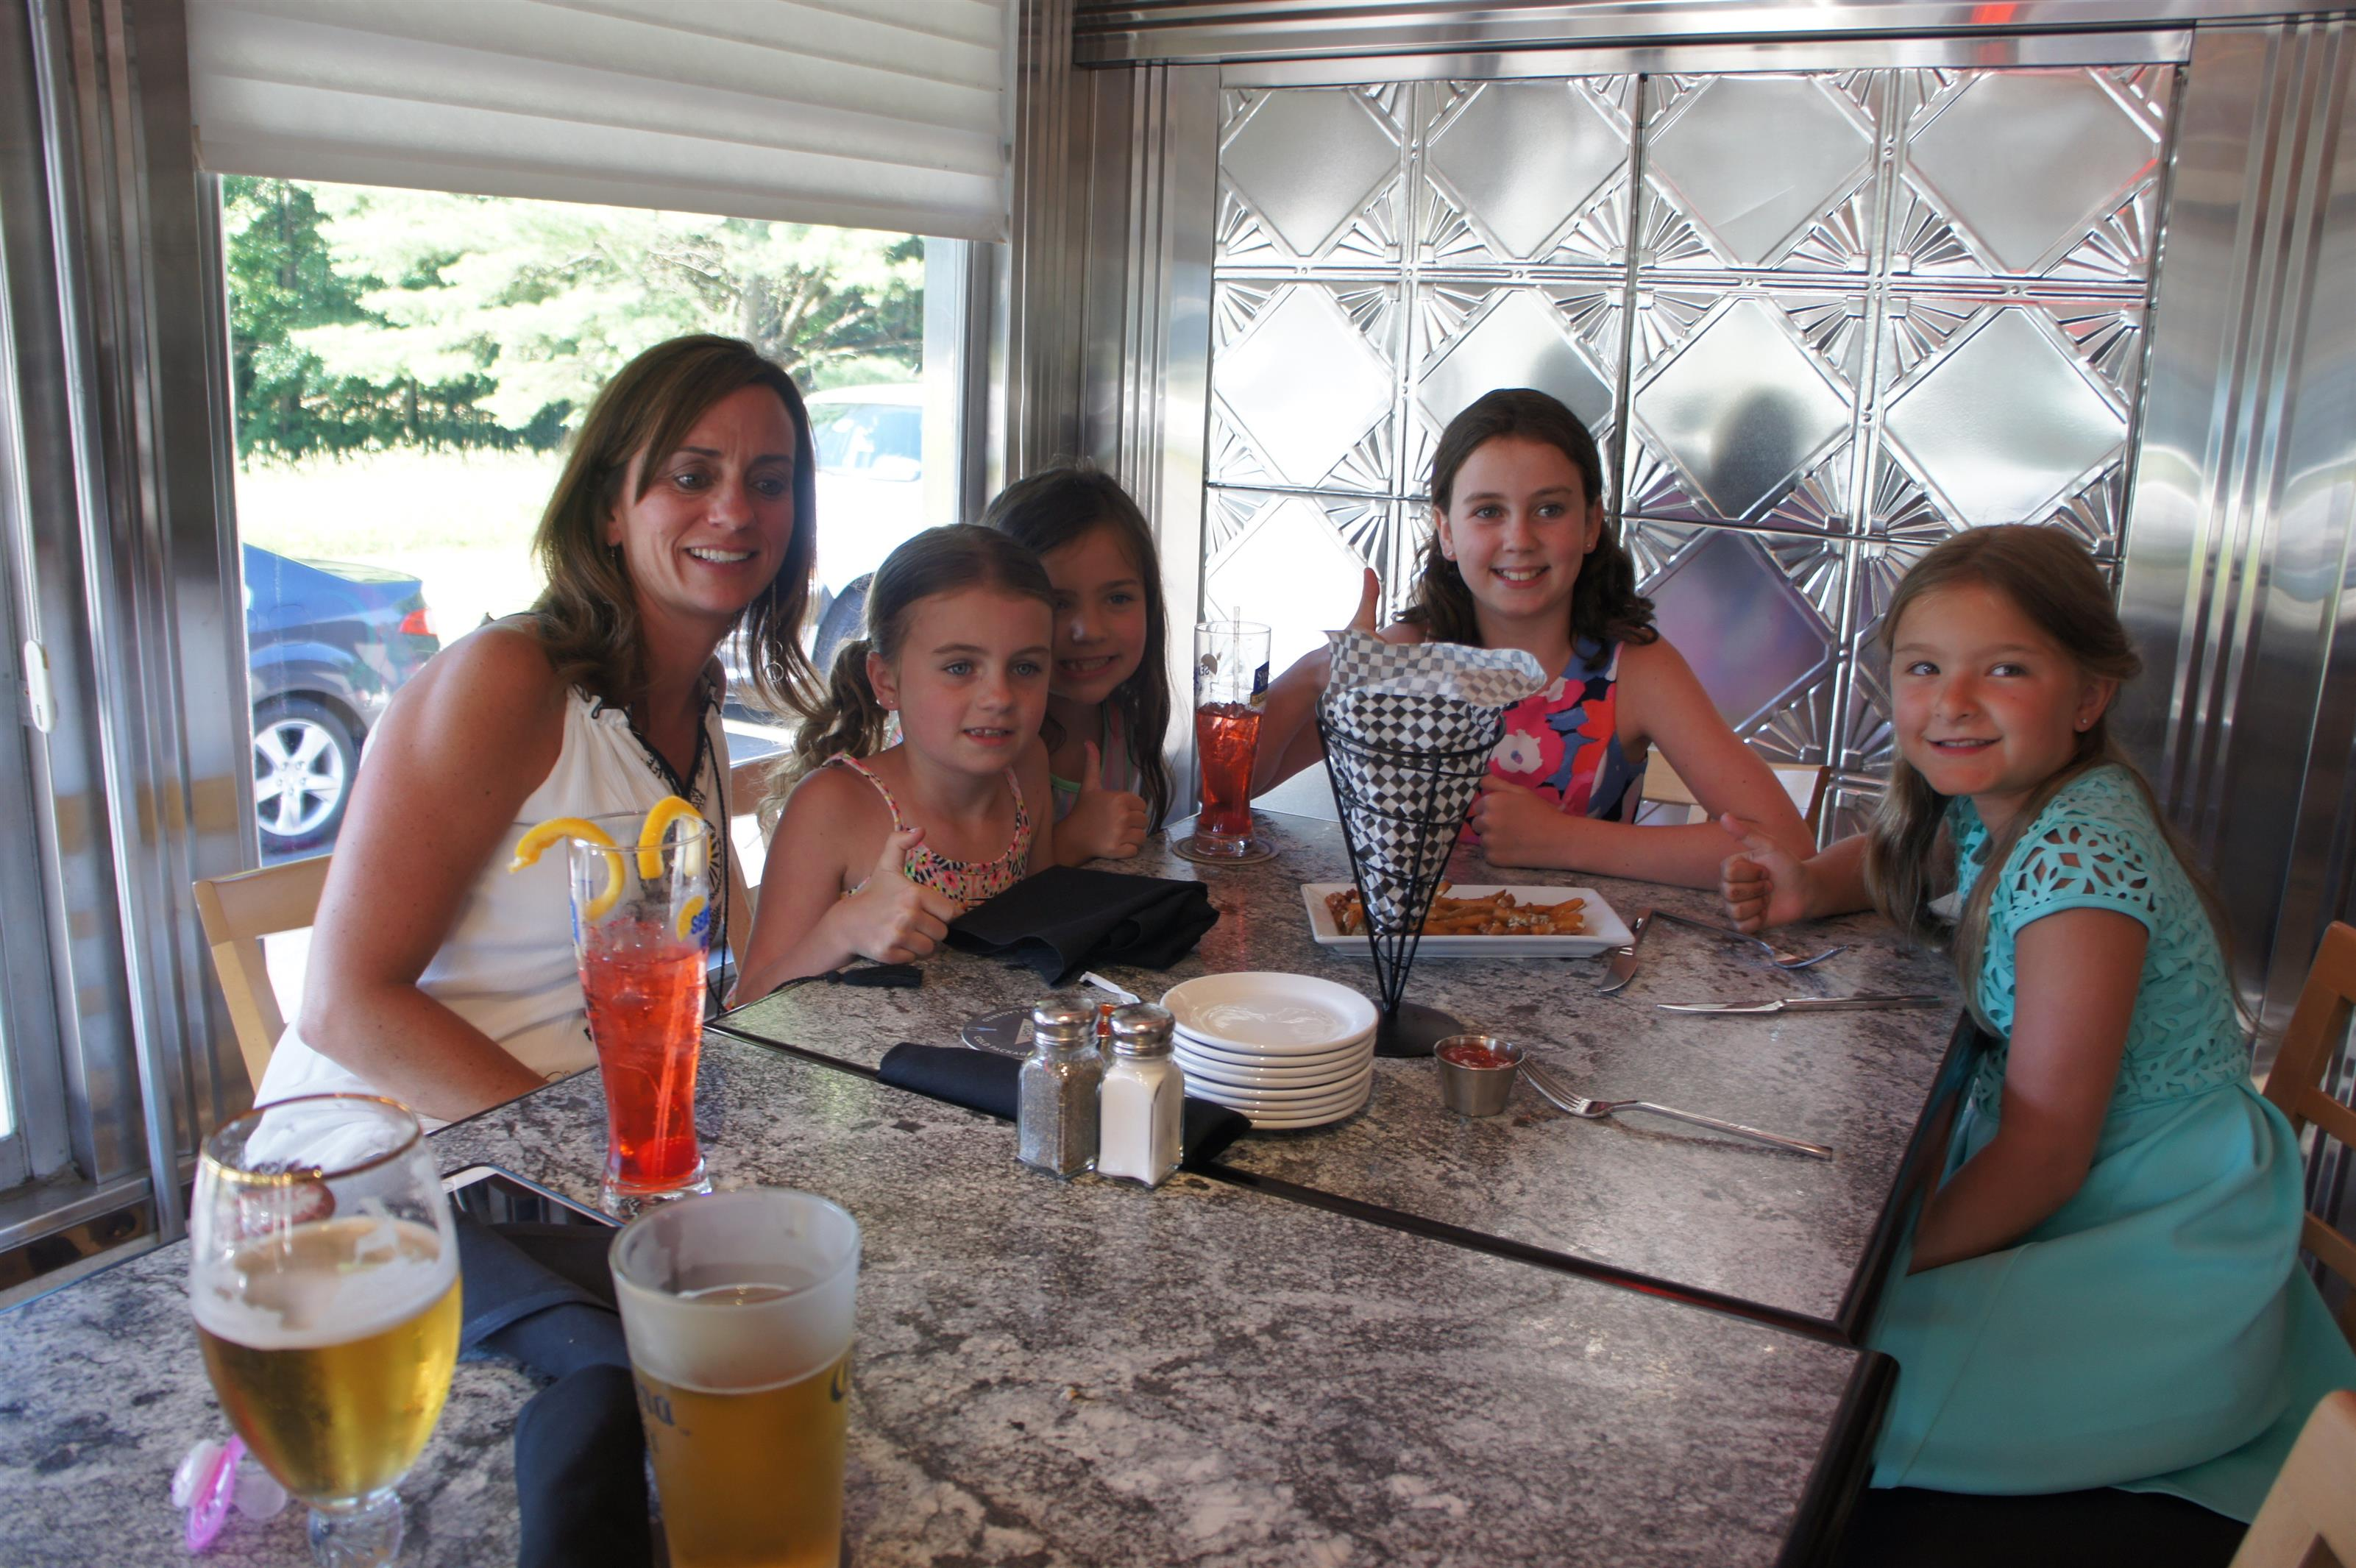 Woman with four young girls waiting at the table smiling and posing for photo